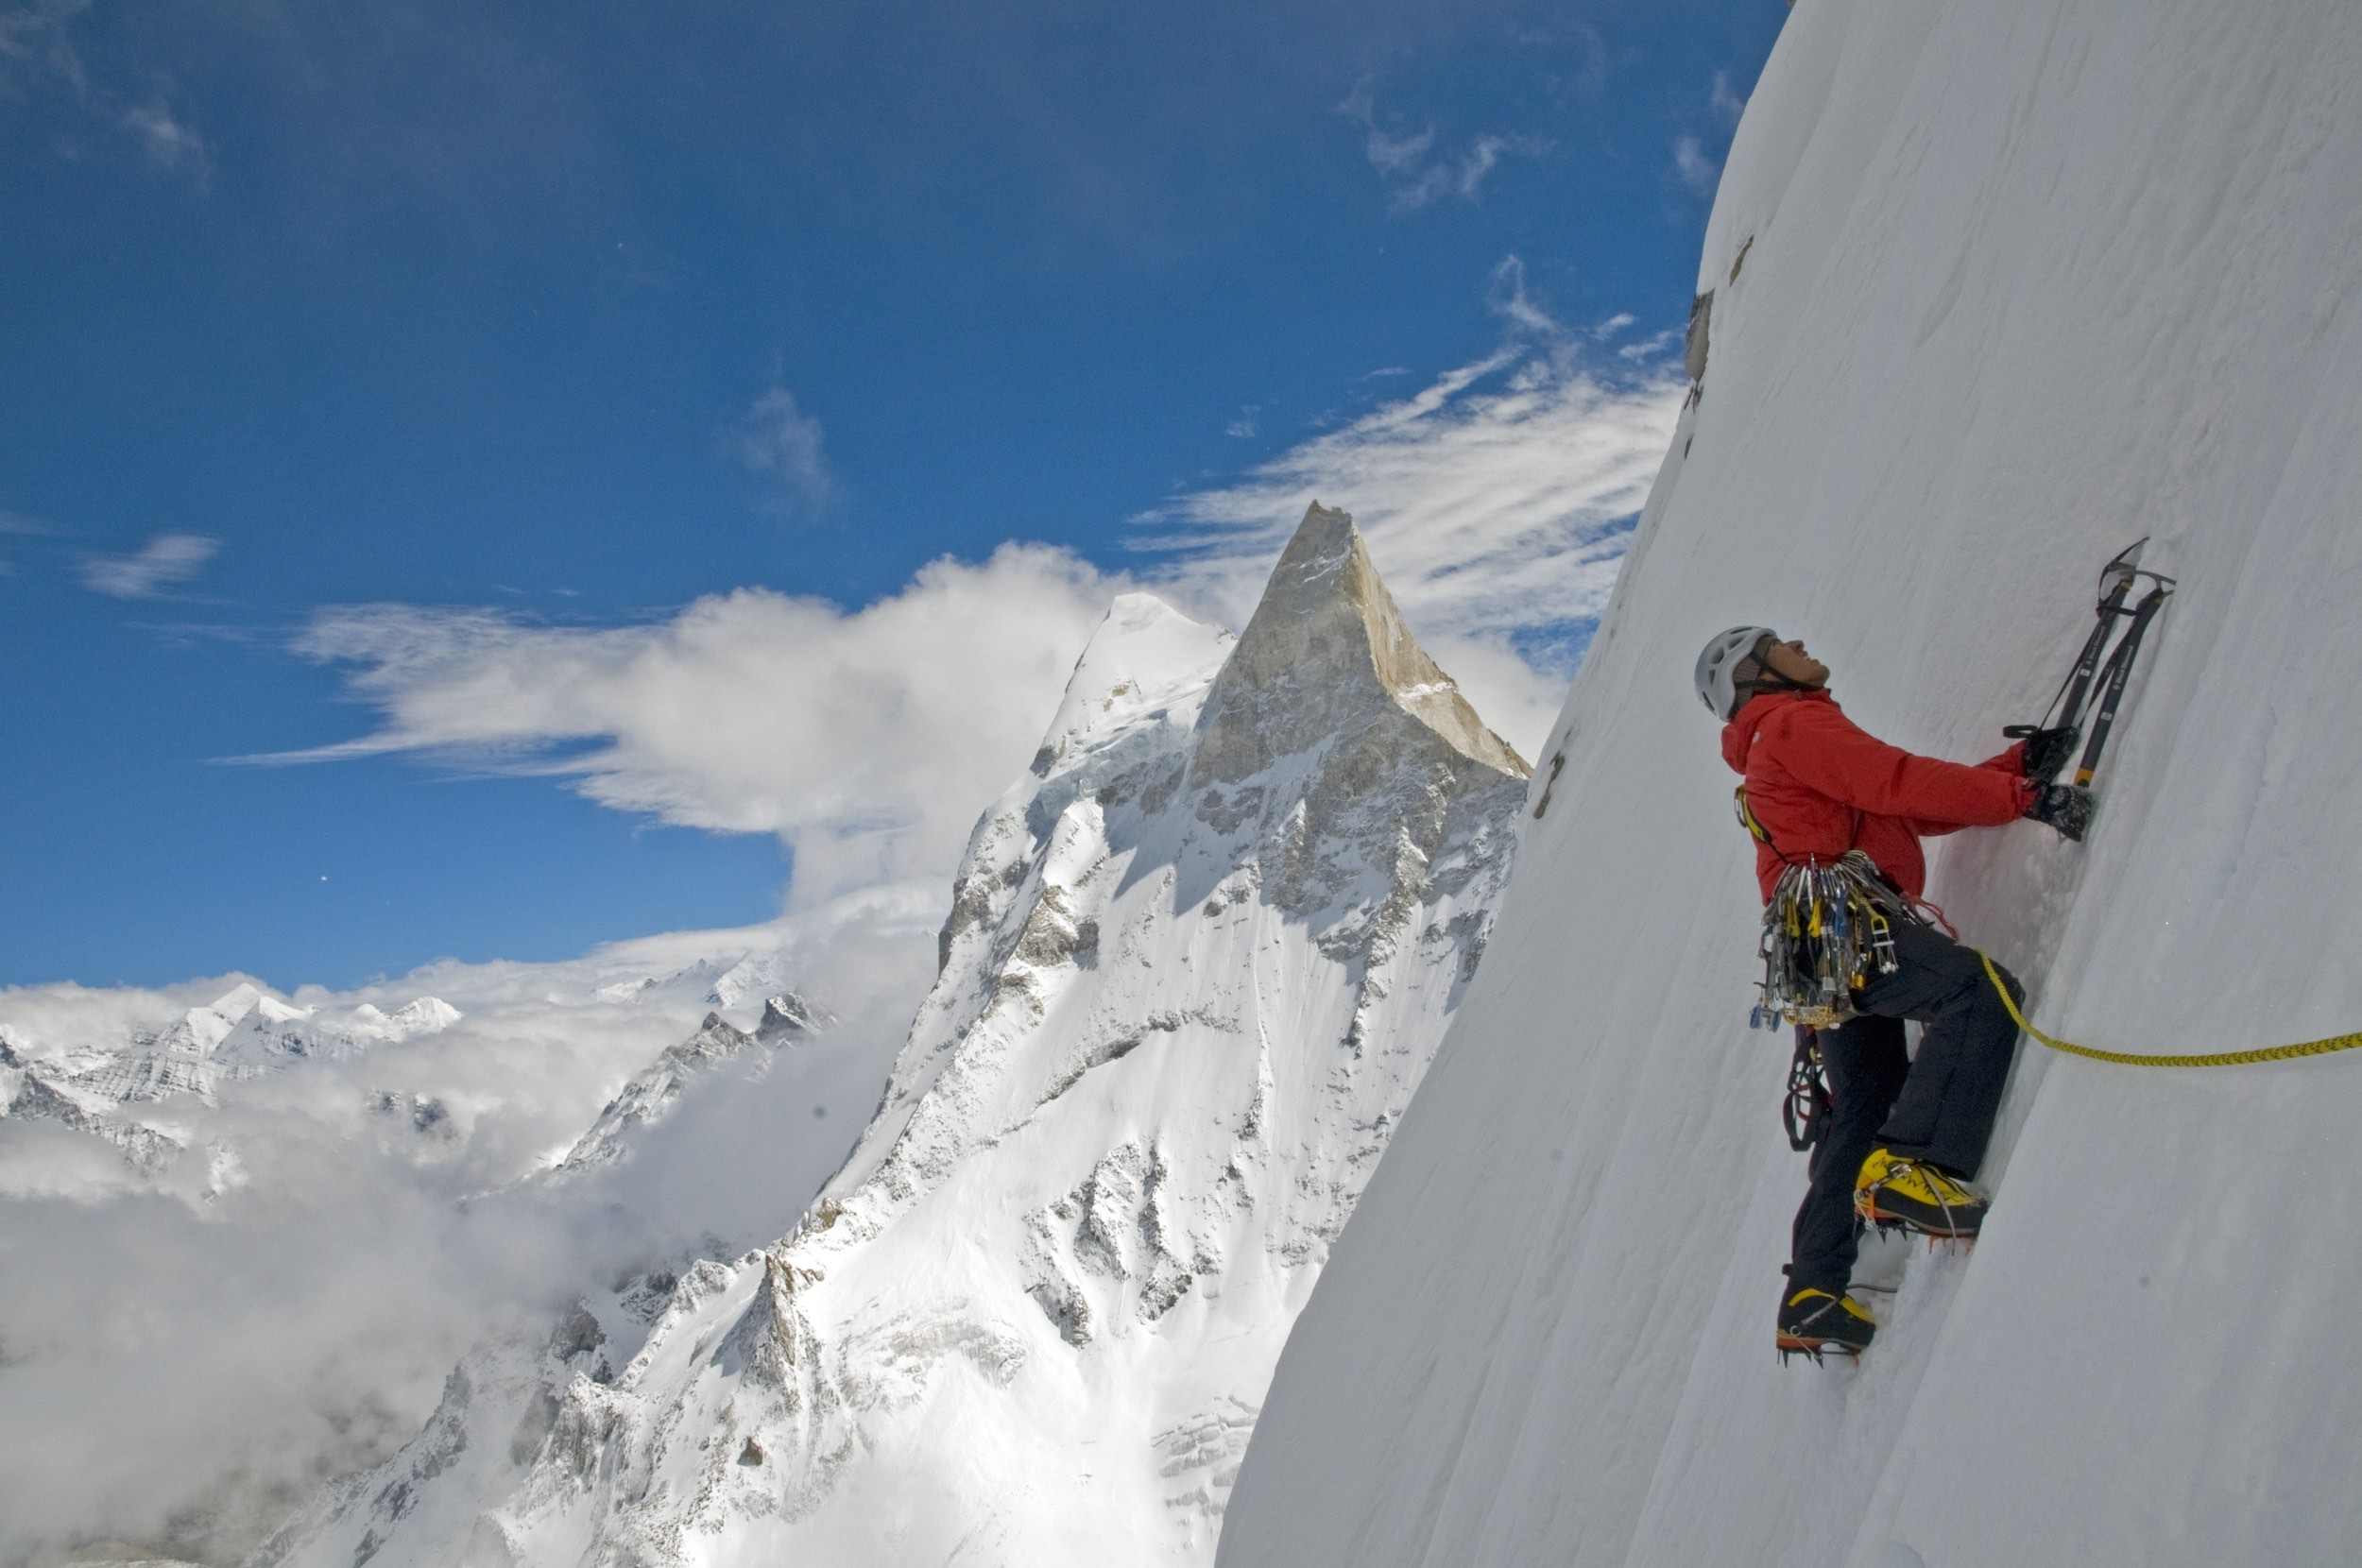 Jimmy Chin leading an ice pitch during the 2008 Meru attempt. © Jimmy Chin from http://www.merufilm.com/